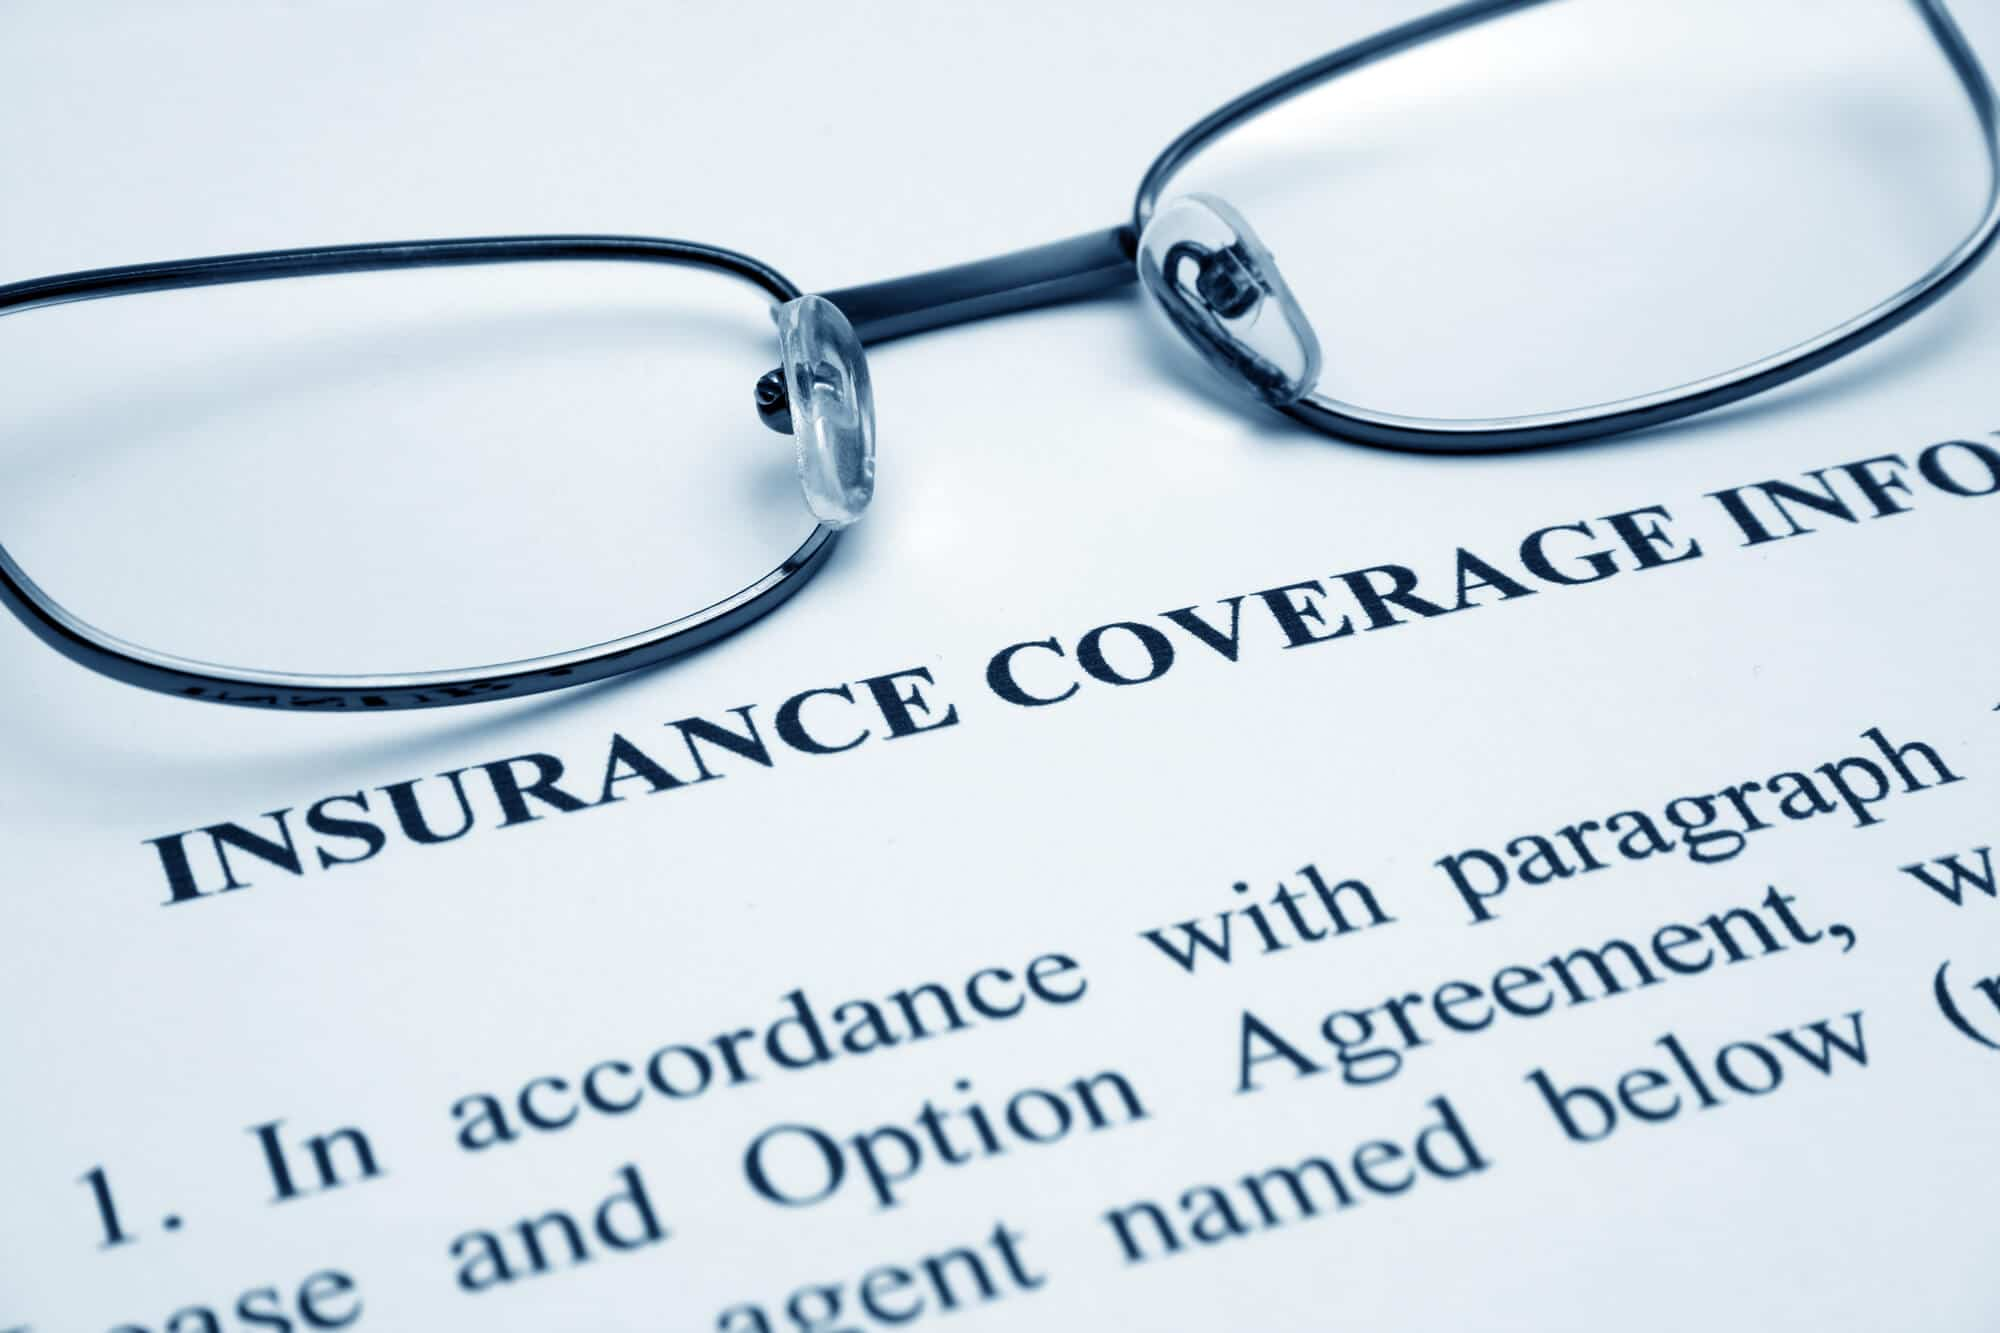 Business insurance typically provides better coverage.